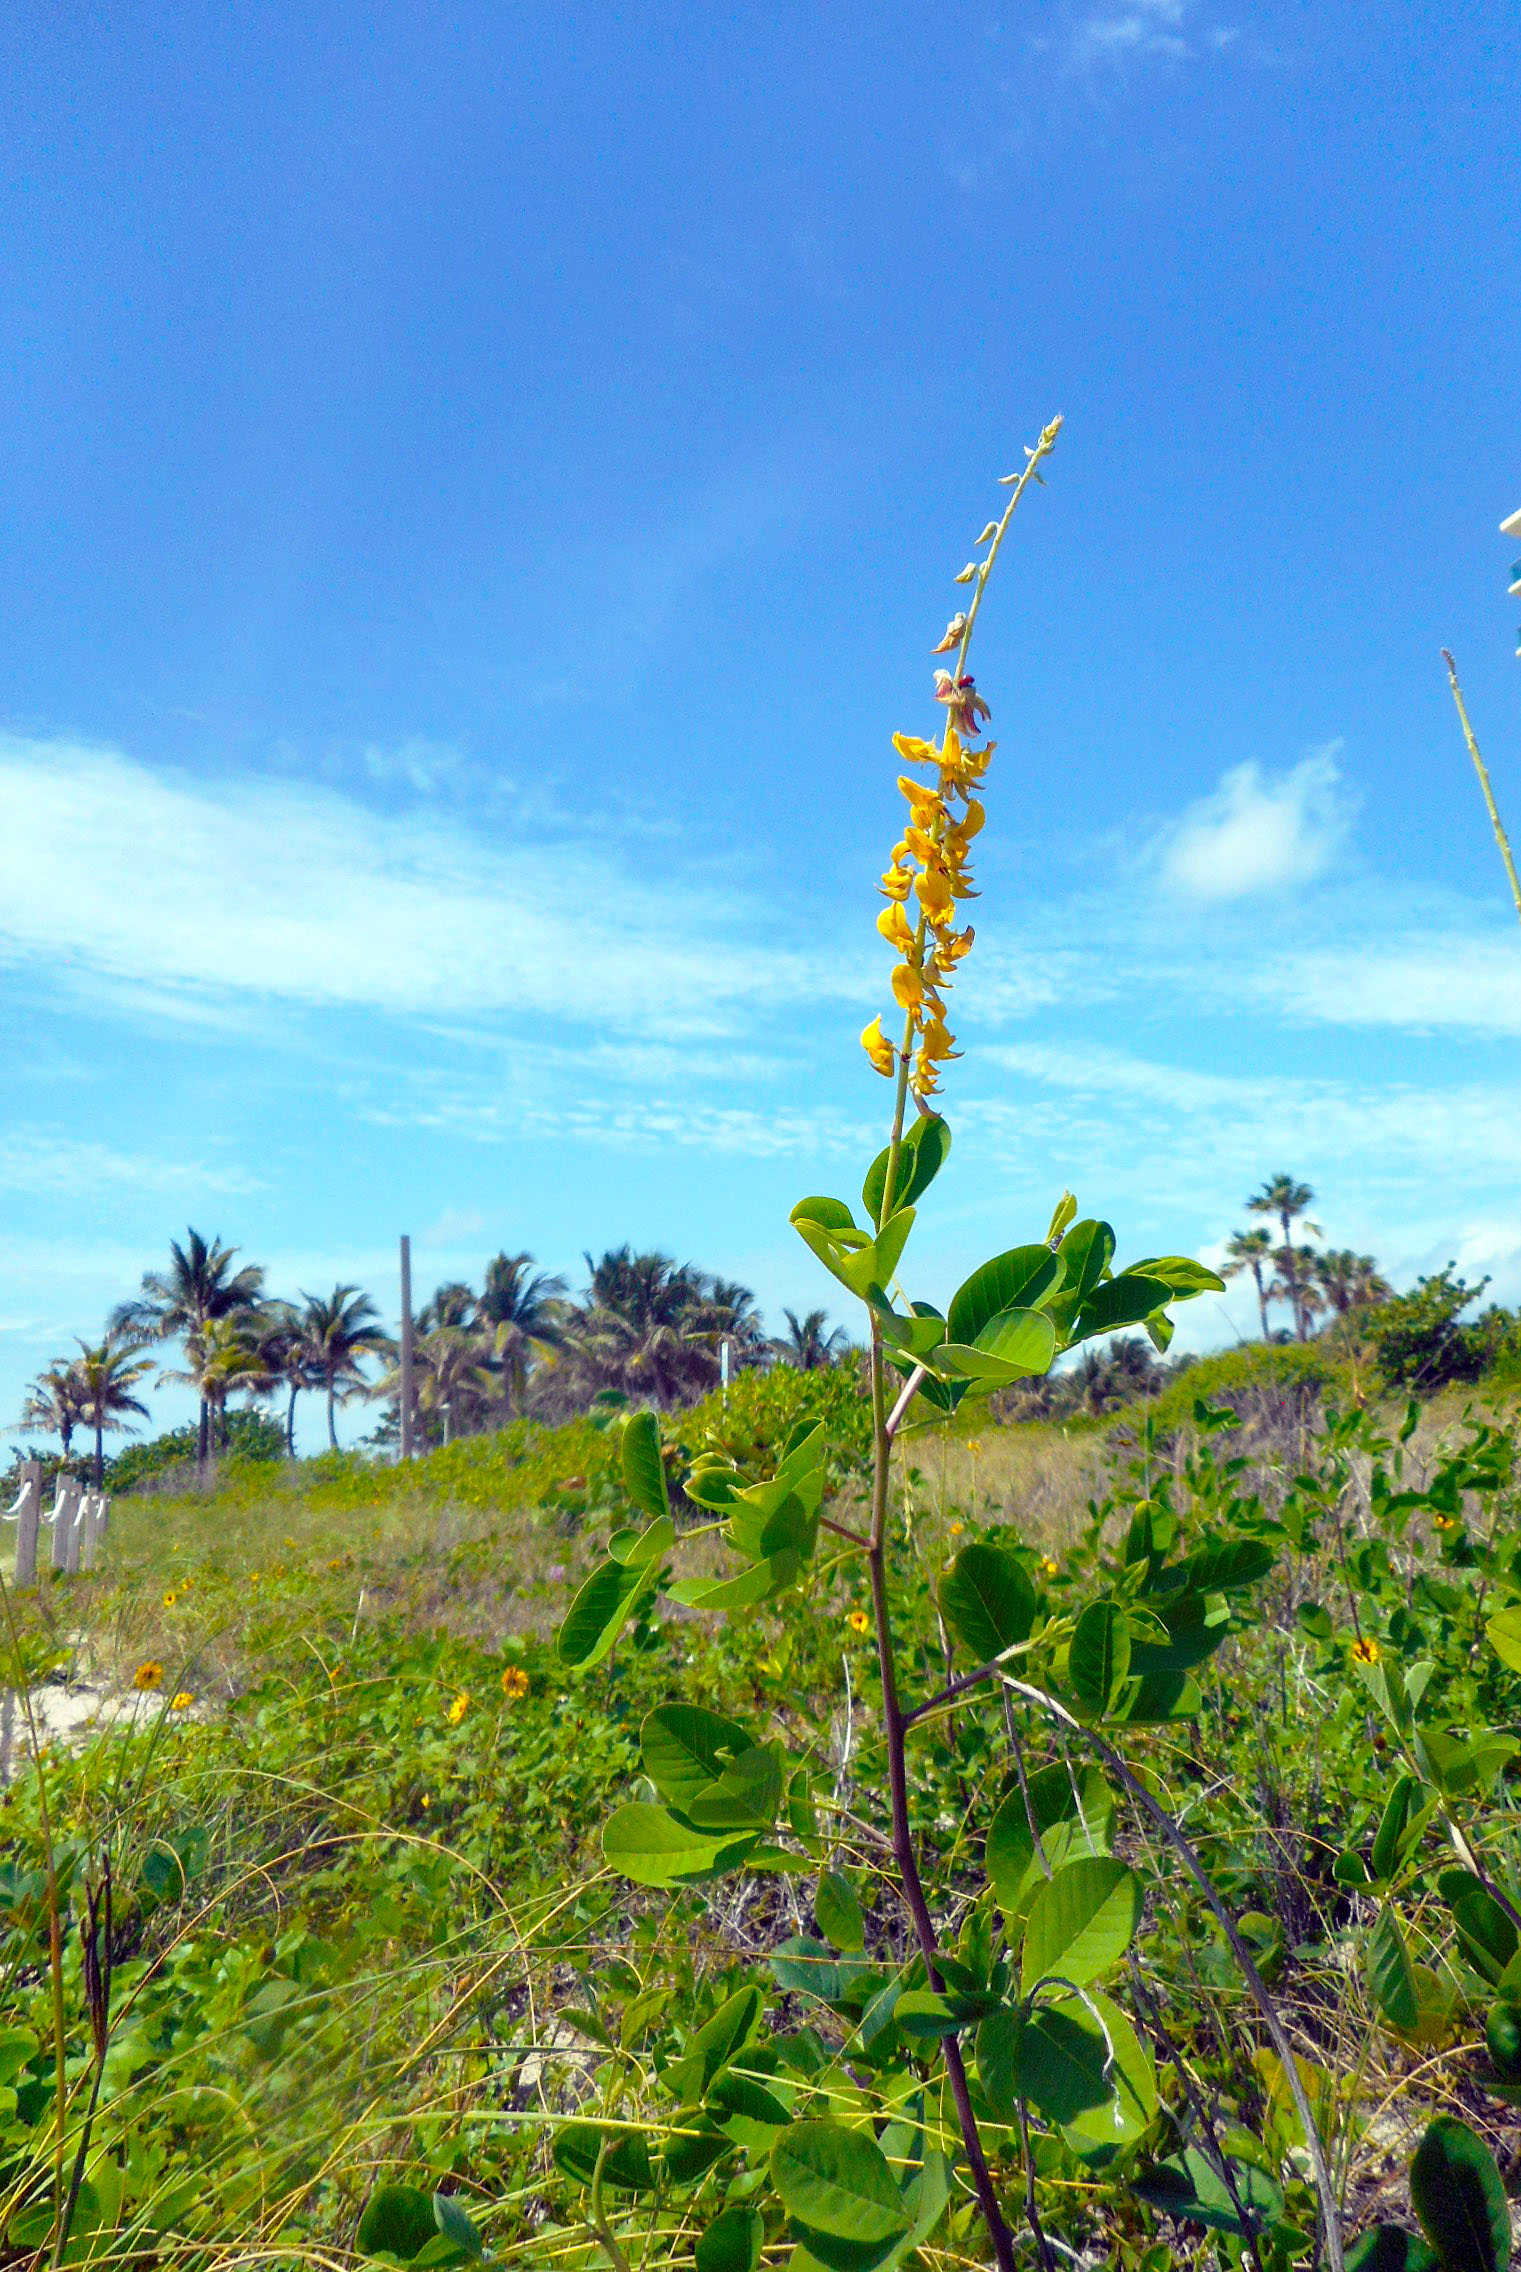 Filemiami beach sand dune flora tall plant with yellow flowers filemiami beach sand dune flora tall plant with yellow flowersg mightylinksfo